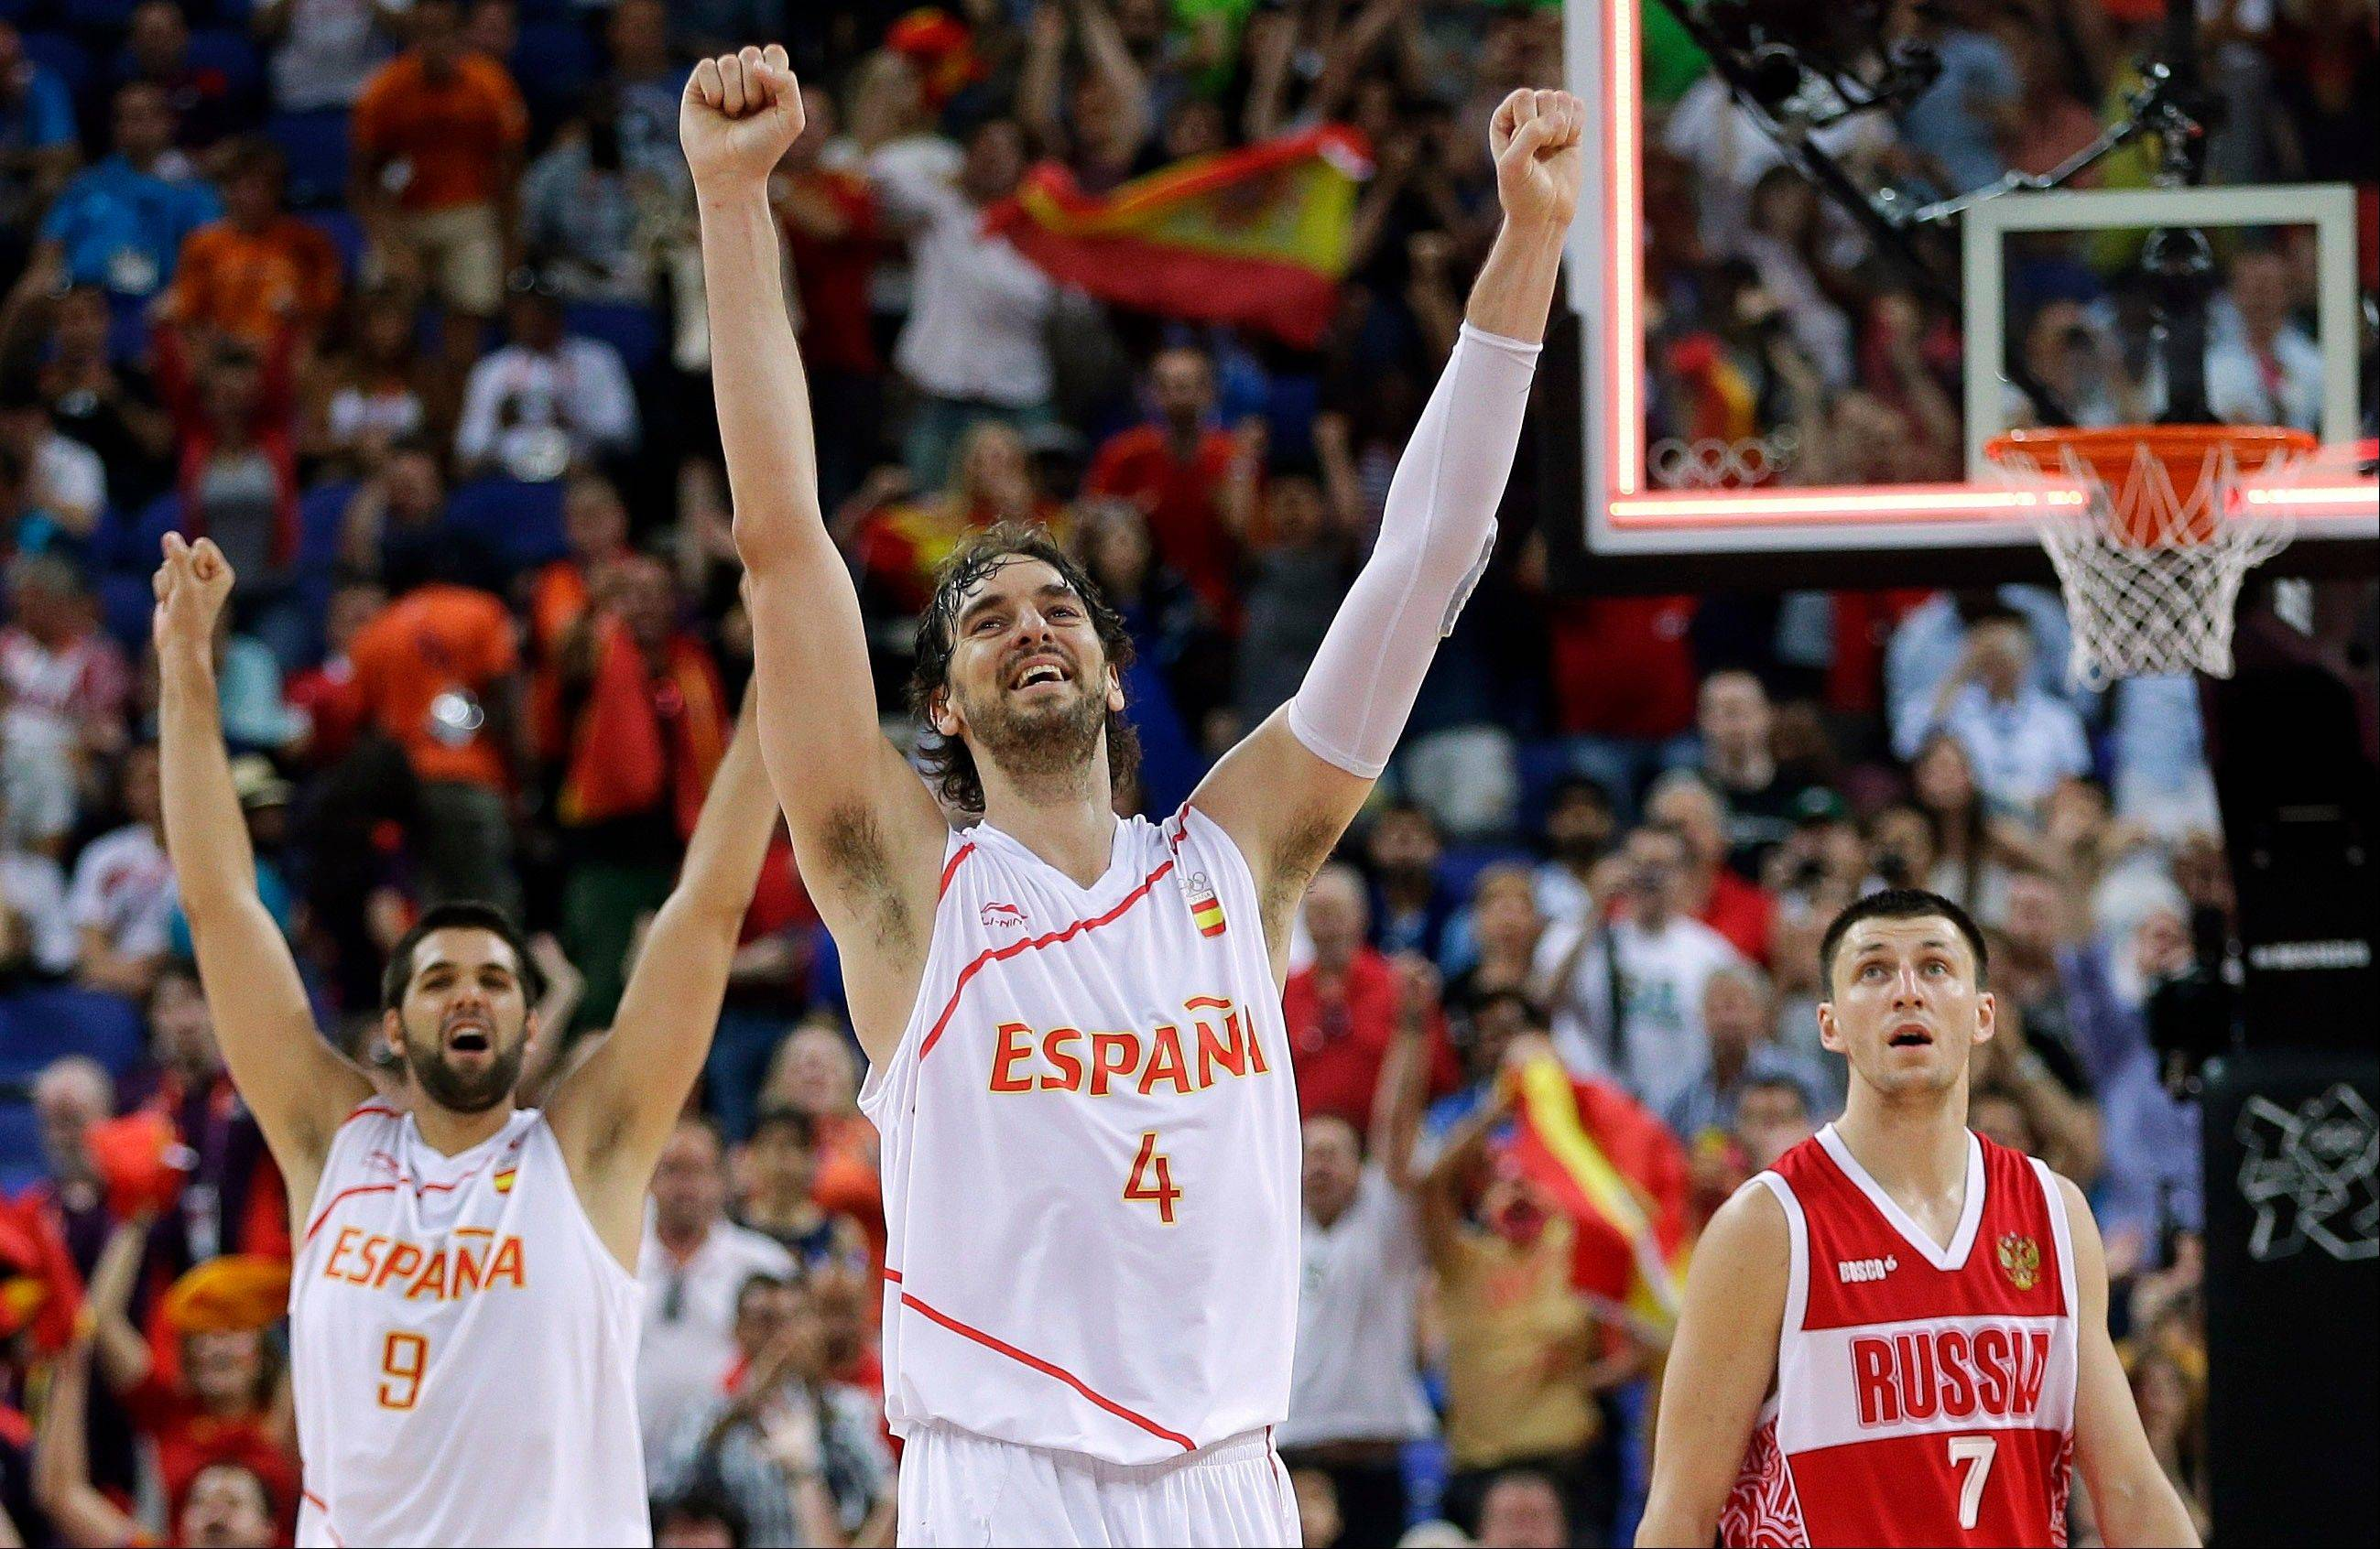 Spain's Pau Gasol (4) and teammate Felipe Reyes (9) celebrate their win over Russia in a semifinal men's basketball game at the 2012 Summer Olympics, Friday, Aug. 10, 2012, in London. Russia's Vitaliy Fridzon is at right.